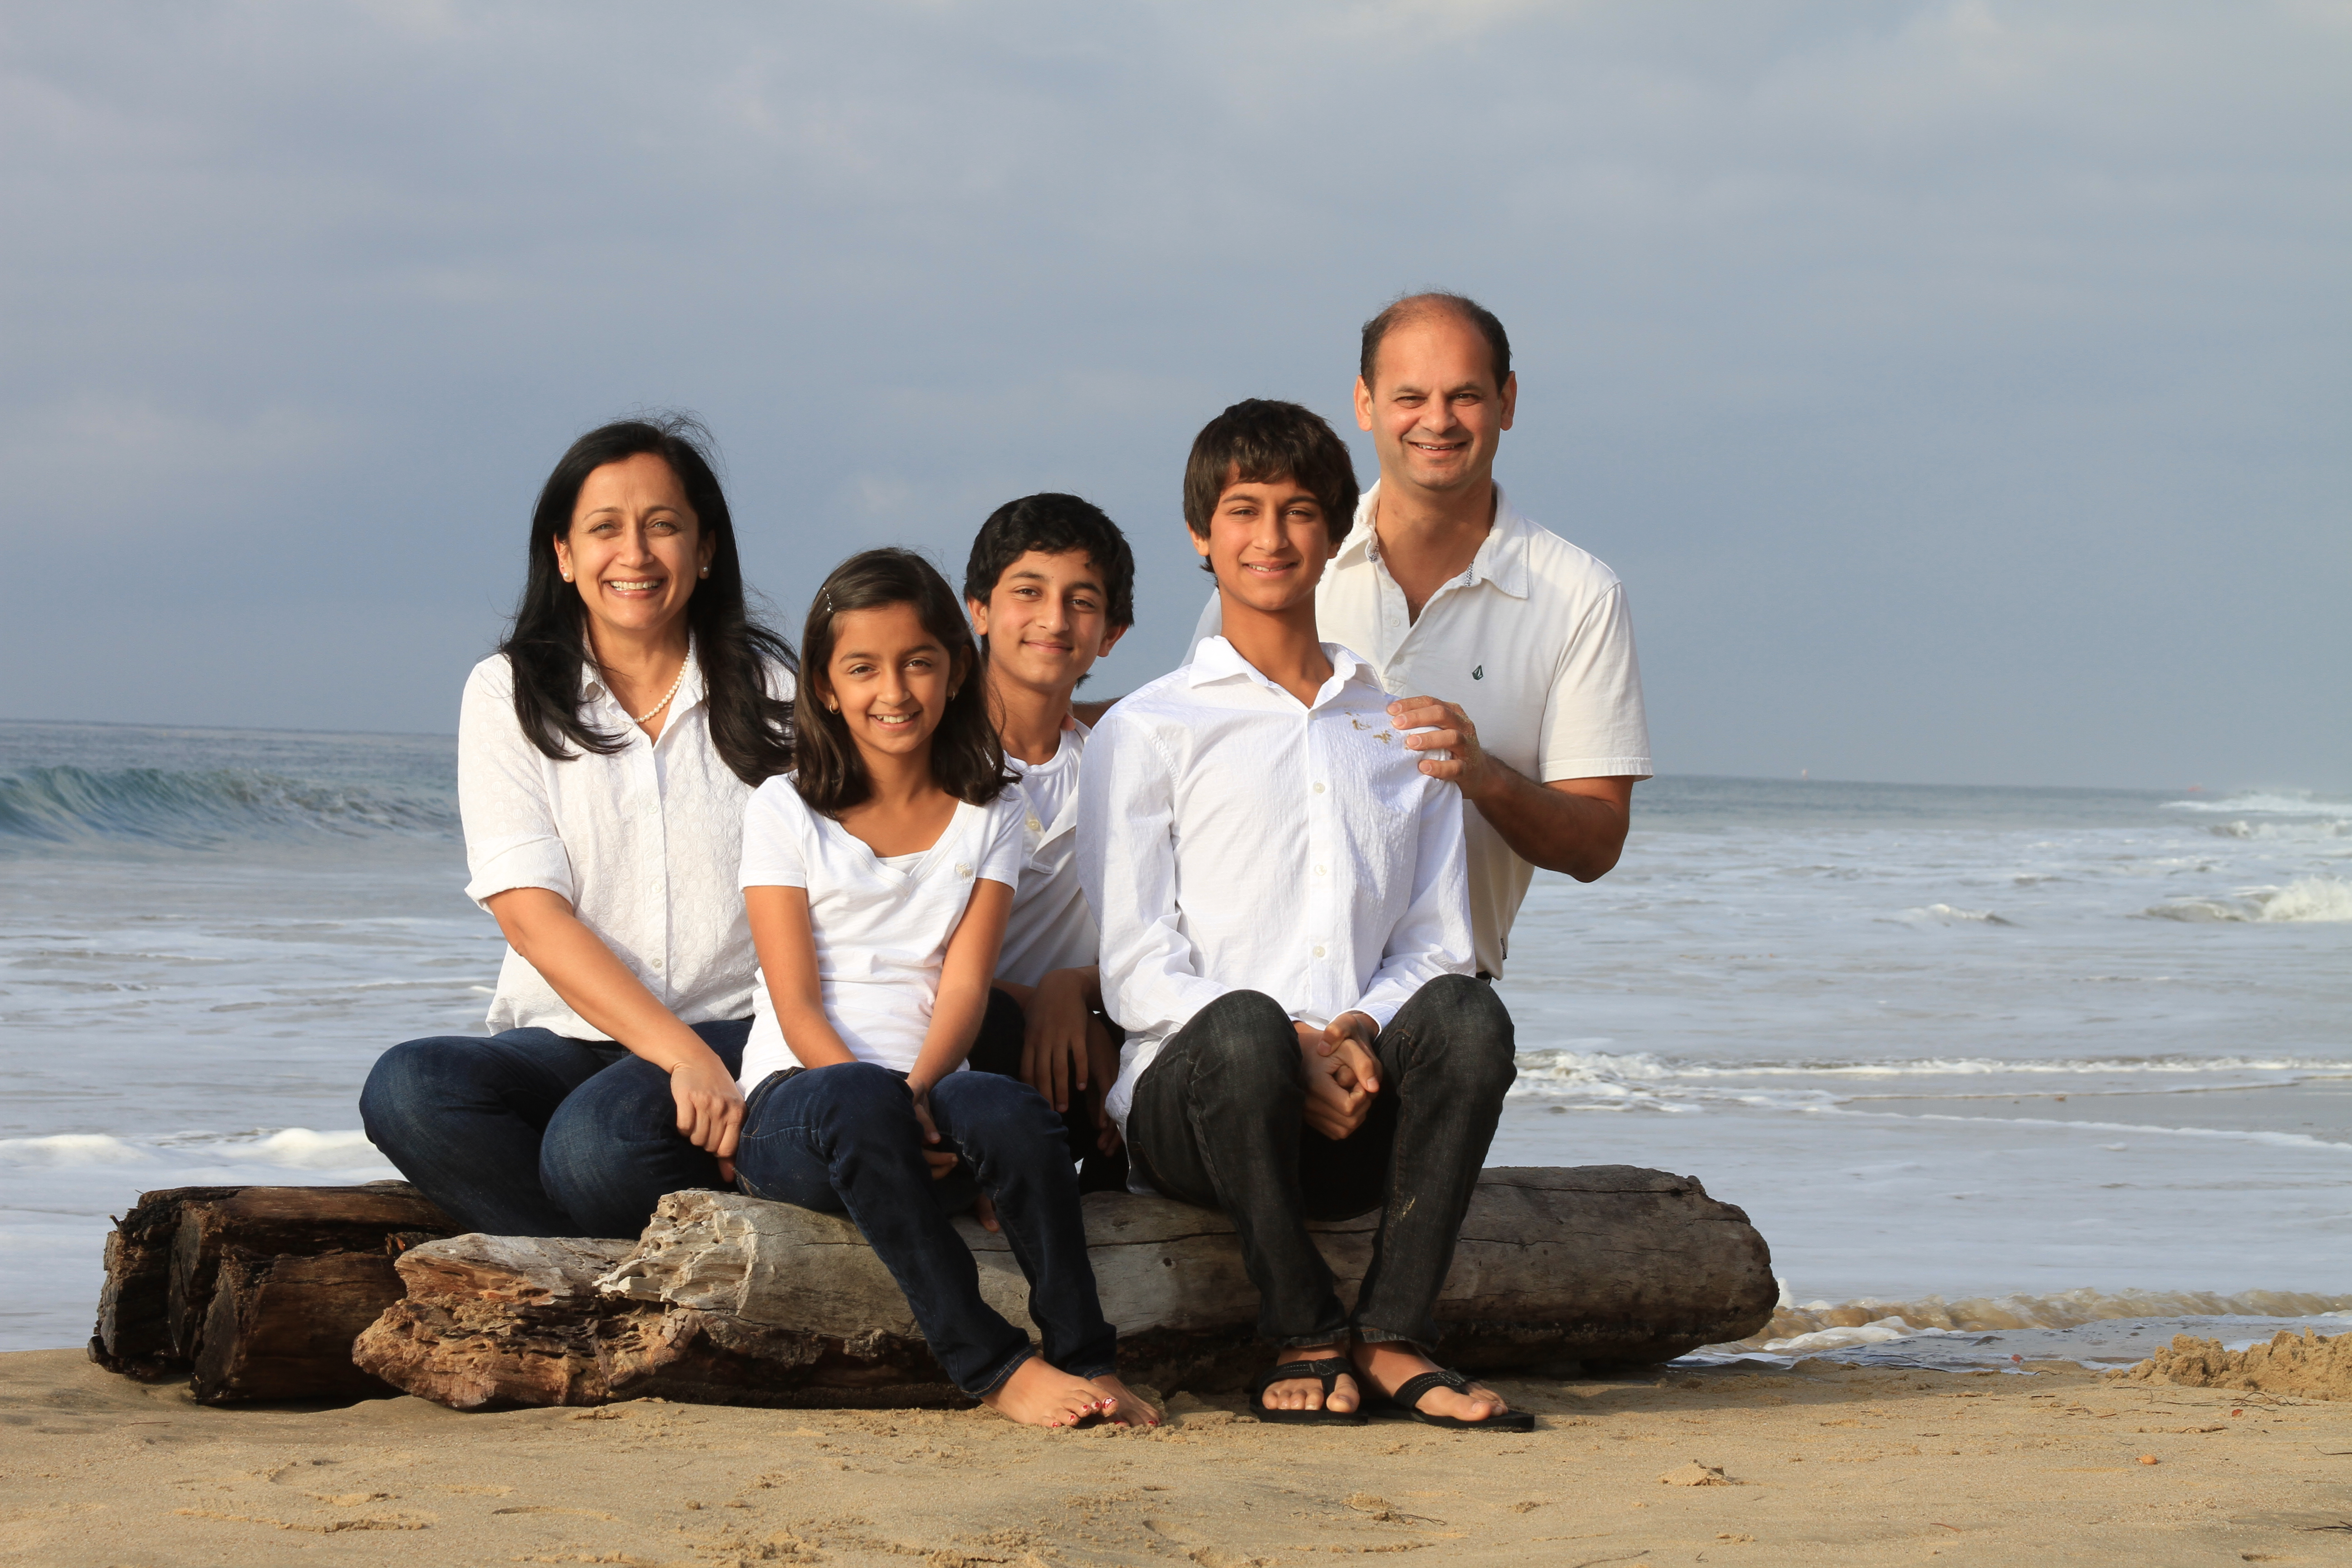 Family Portrait   The Adventures of the Khare Family